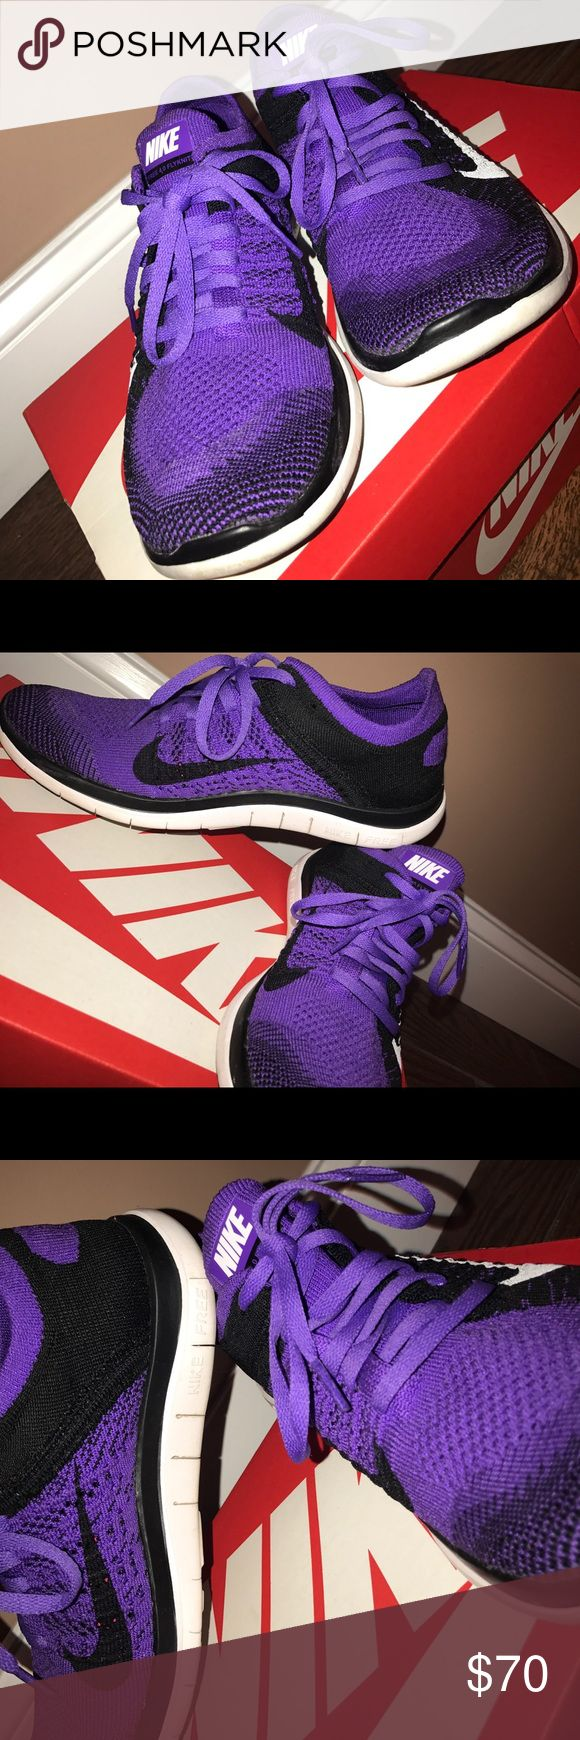 NIKE FREE RUN FLY KNIT RUNNING SHOES SIZE 8 Flexible and DURABLE running shoes made by NIKE.  -Worn less than 5 times  -Bought in local shopping mall from CHAMPS STORE  -3 years old  -WILL BE SHIPPED IN REGULAR USPS BOX, NIKE BOX NOT AVAILABLE. Nike Shoes Sneakers